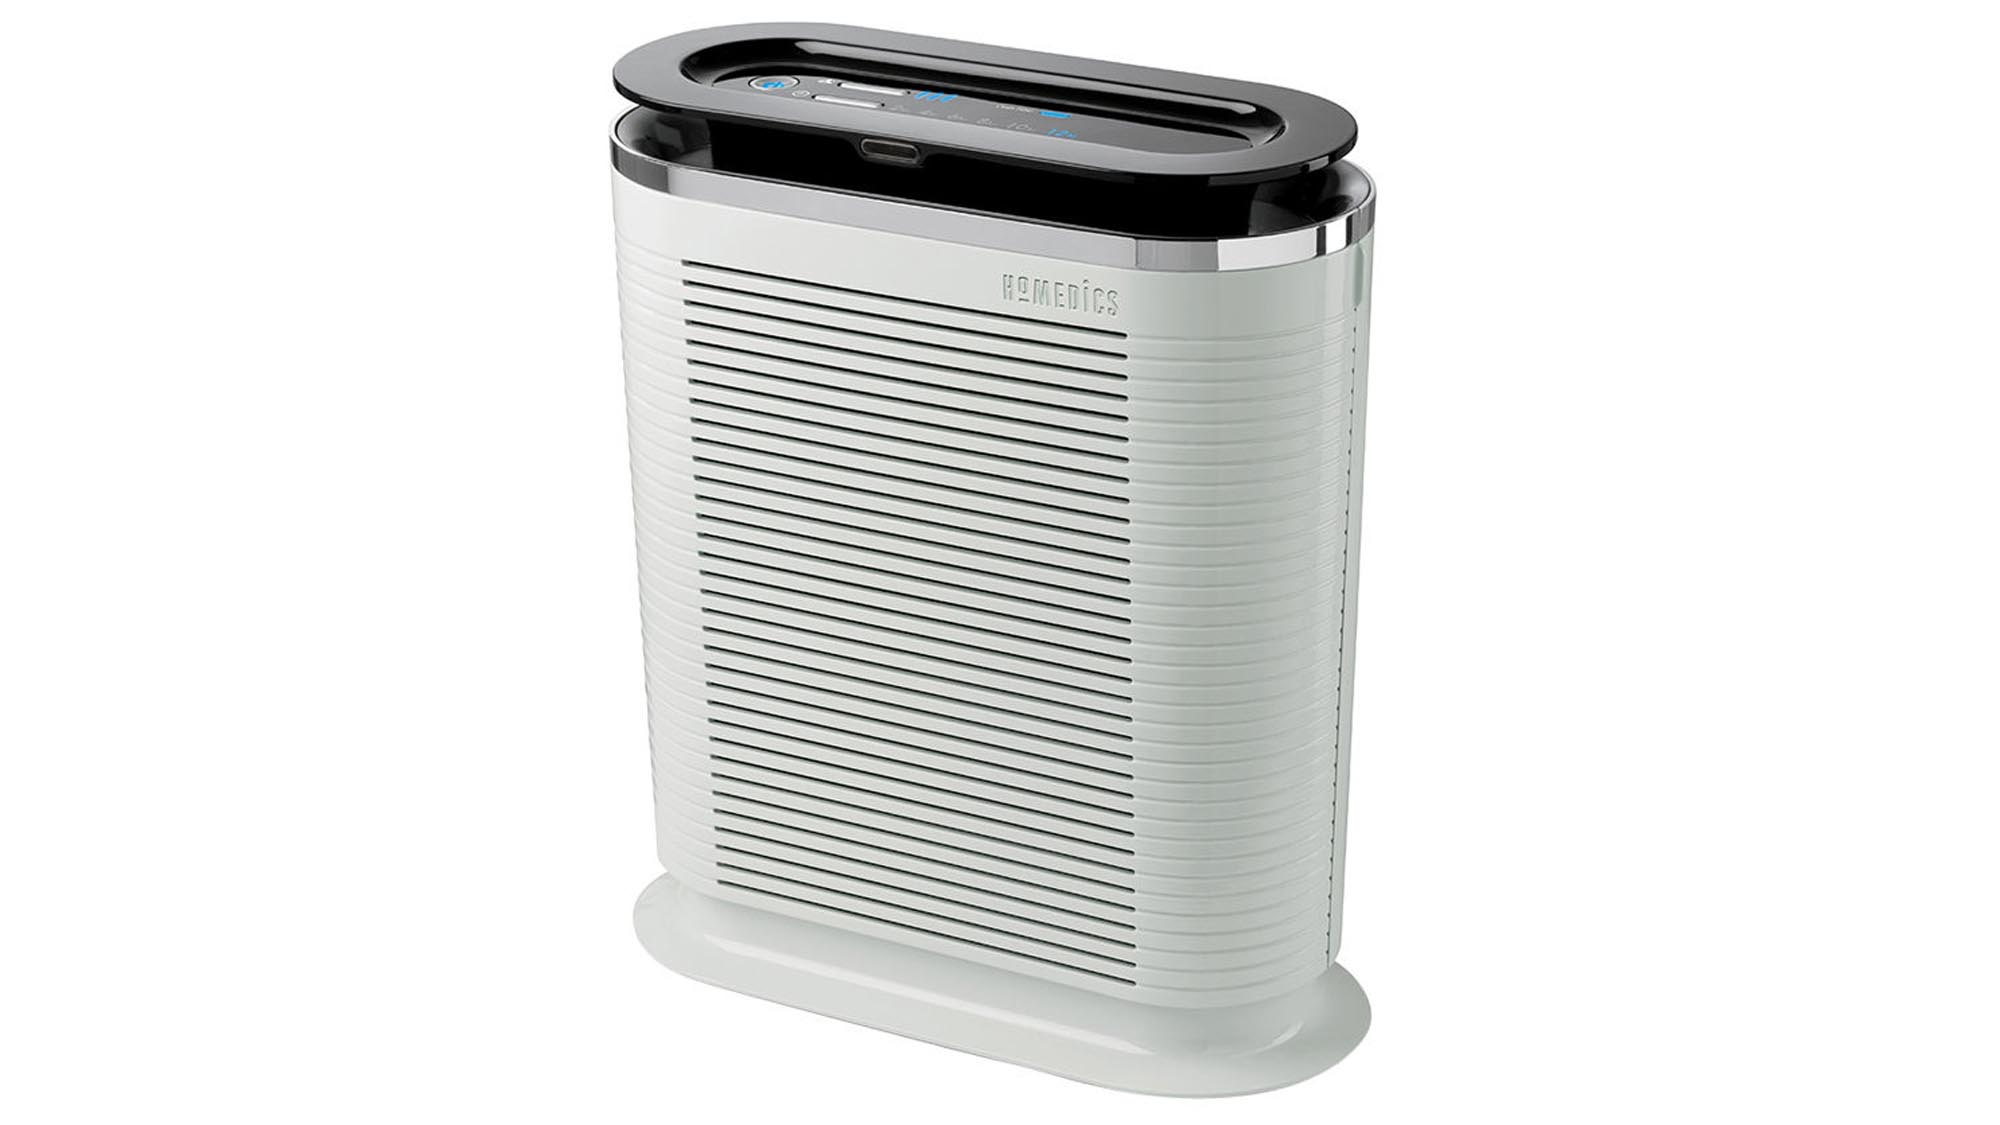 Best air filter for allergies and pet dander -  Given The Low Price Tag But It S Up There With The Big Boys When It Comes To Clearing Pollutants It S Capable Of Removing Cat And Dog Allergens